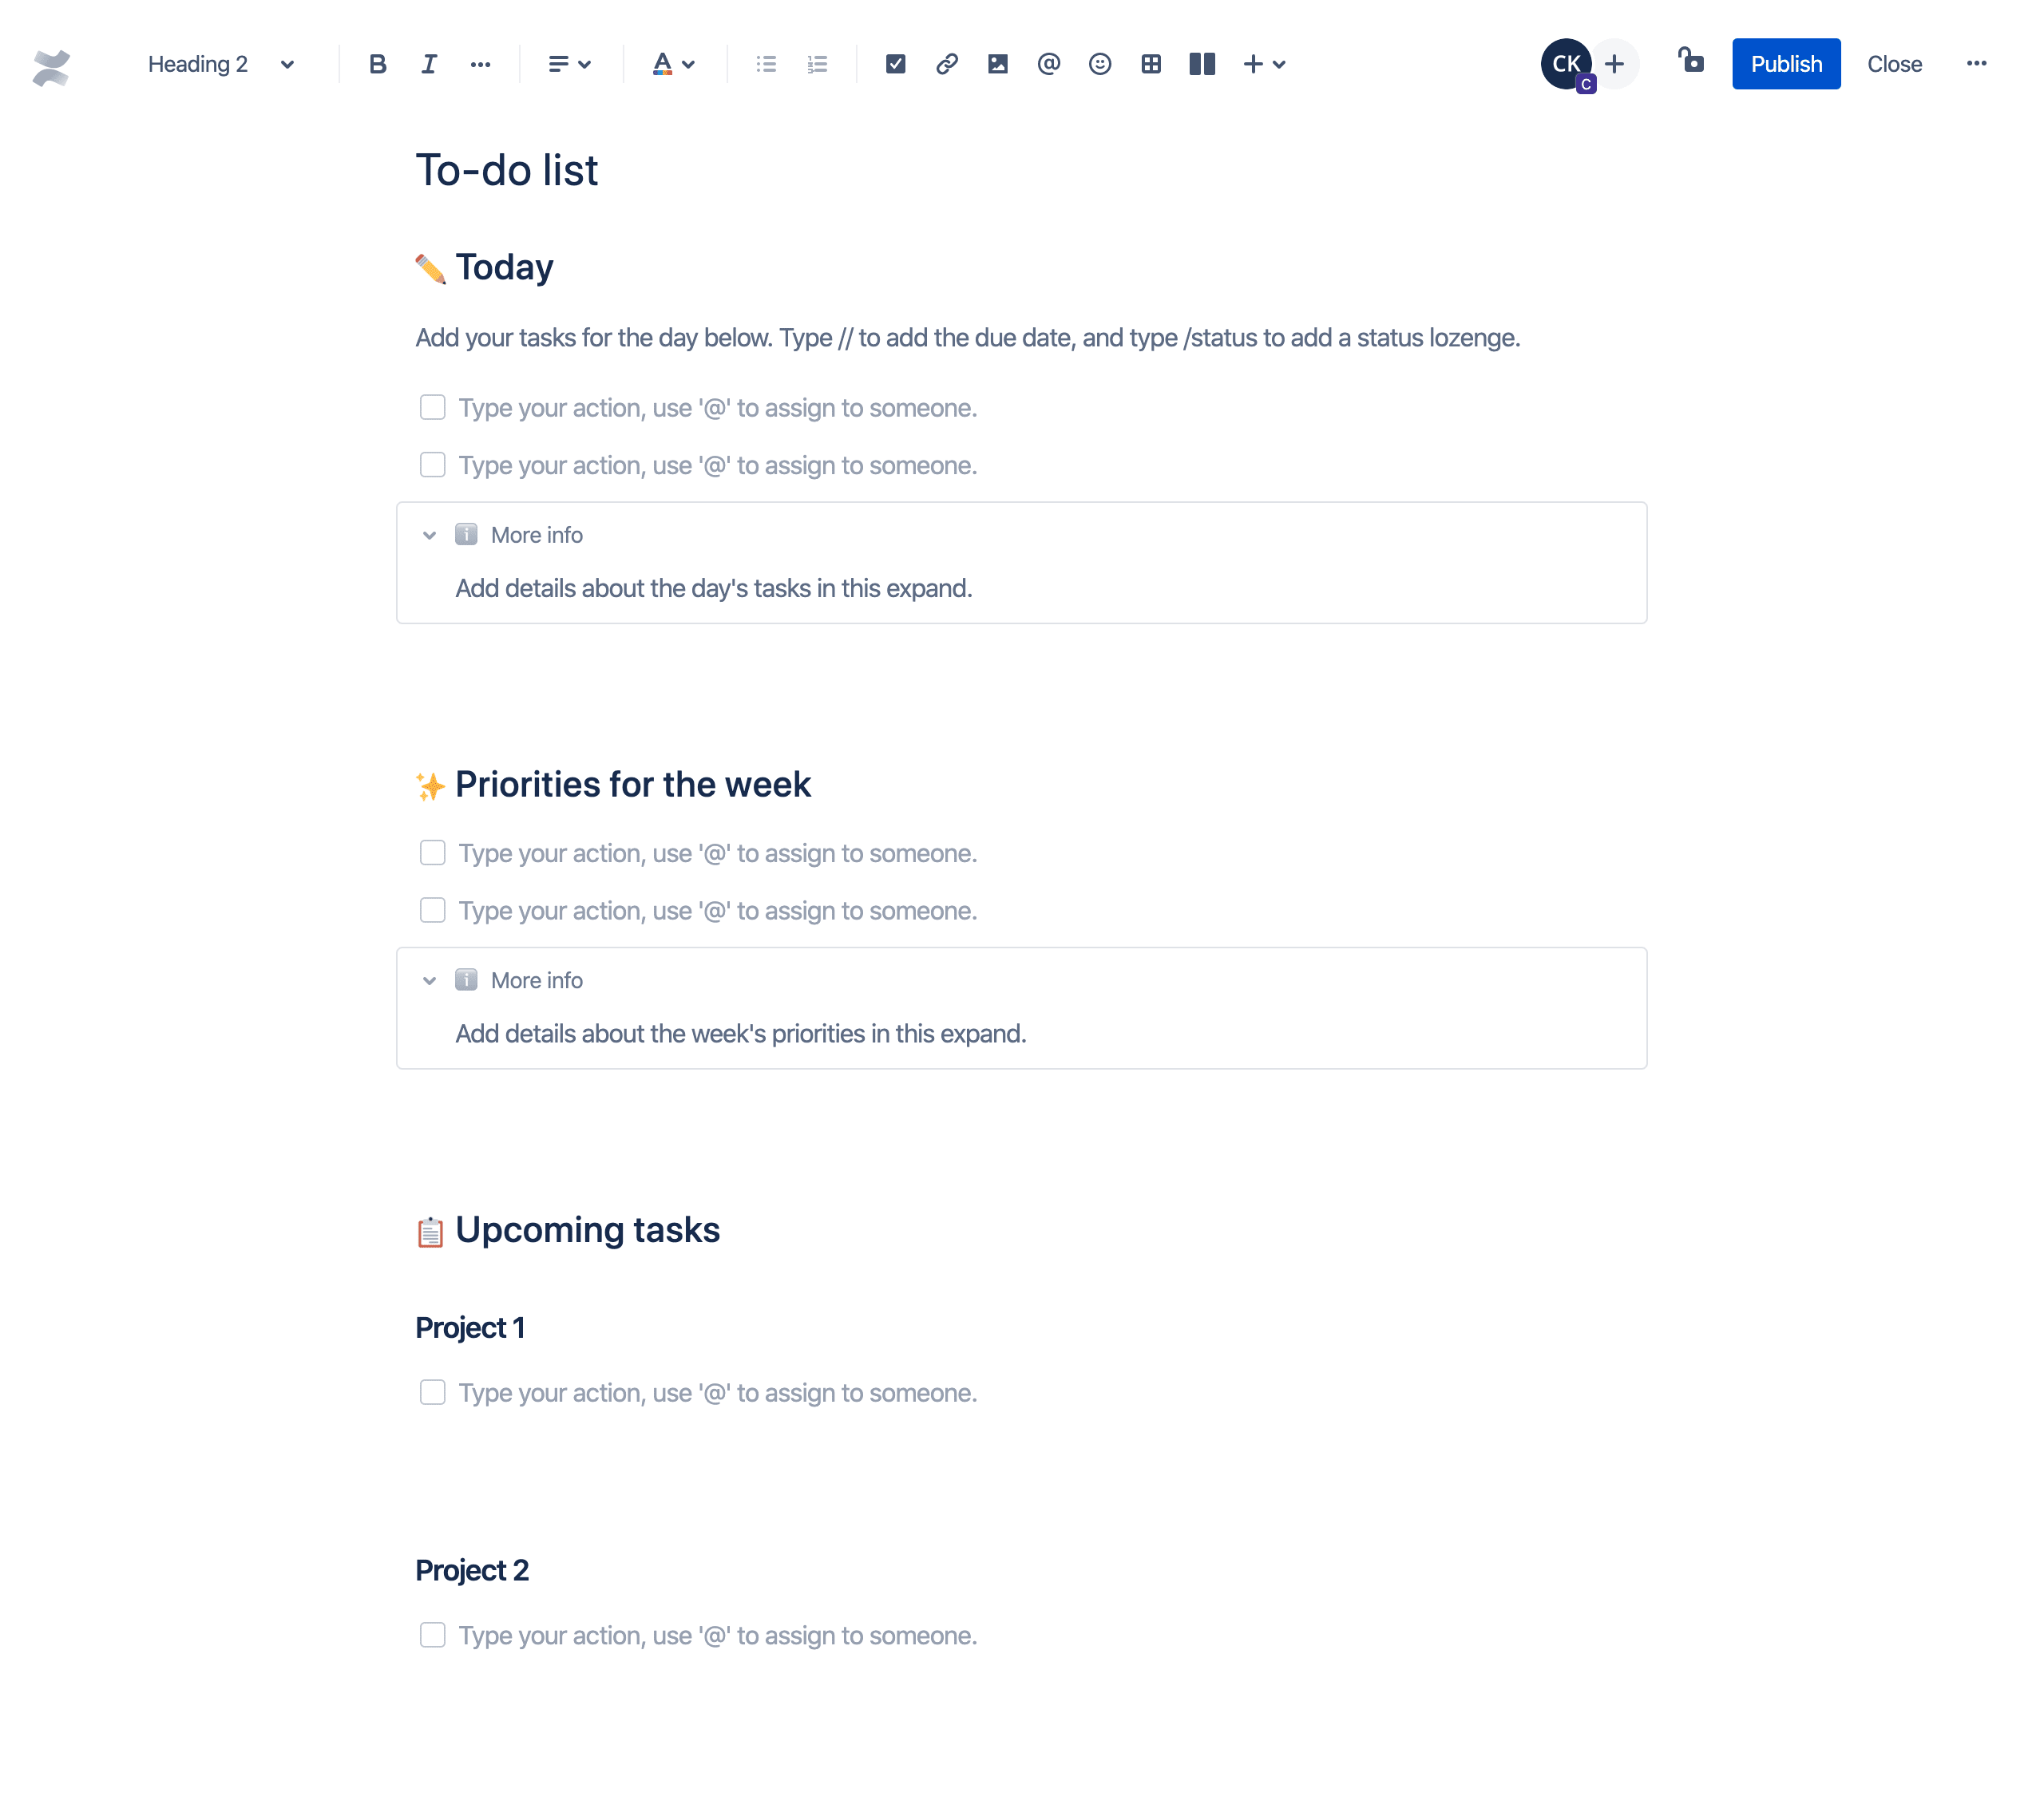 To-do list template